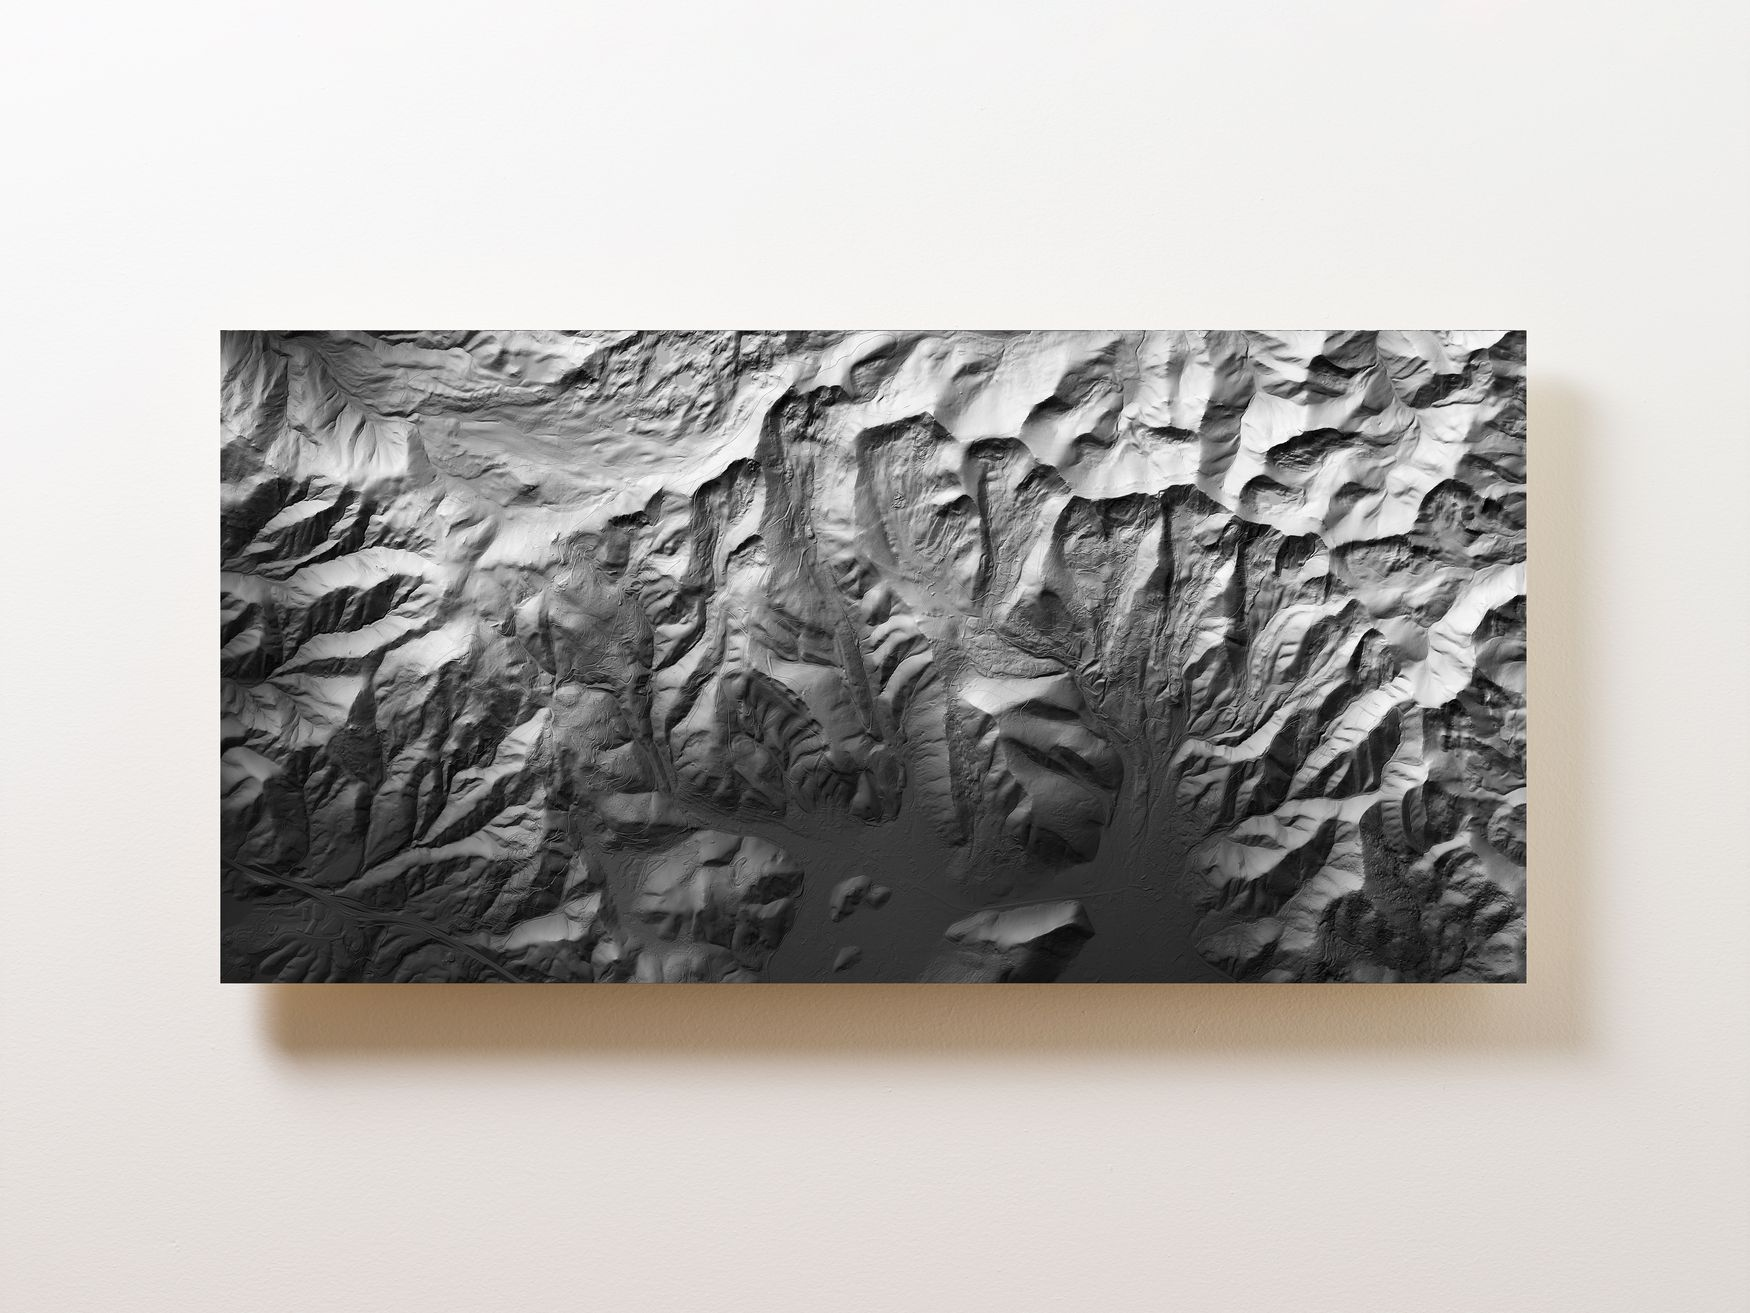 Park City Wall Map